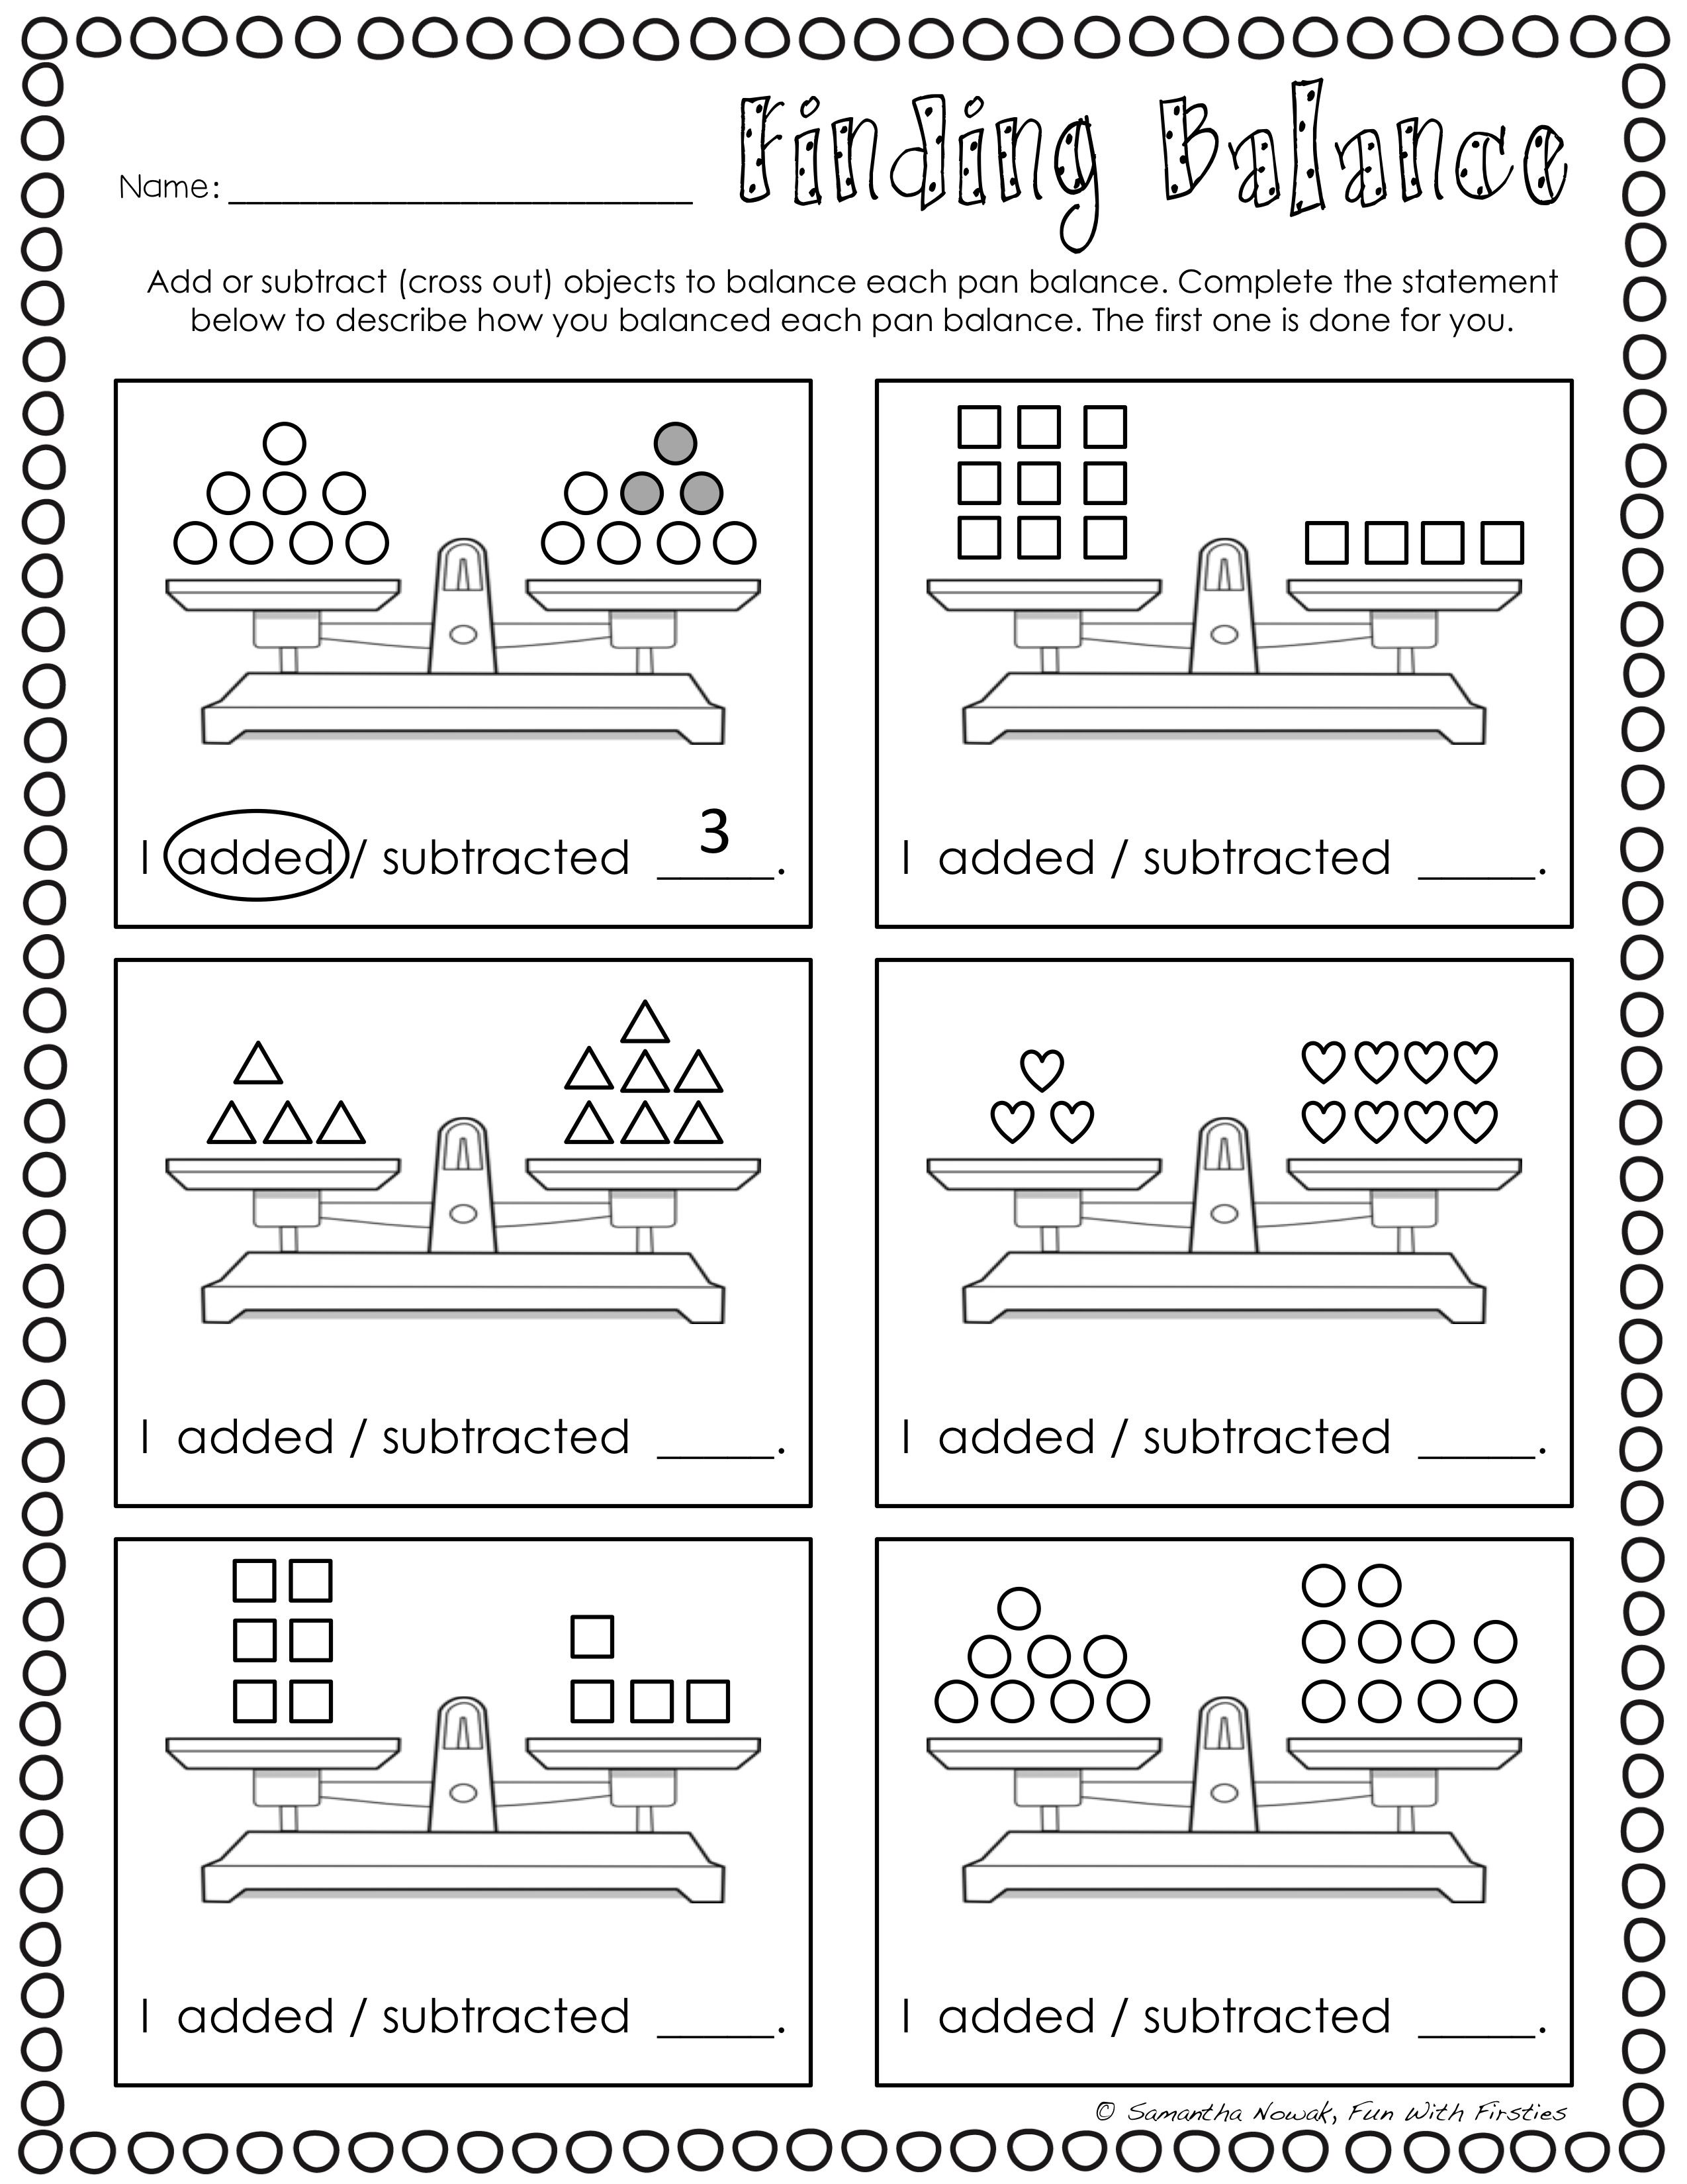 hight resolution of Balancing Equations: Print \u0026 Go! worksheets for extra practice and/or  assessment   Balancing equations